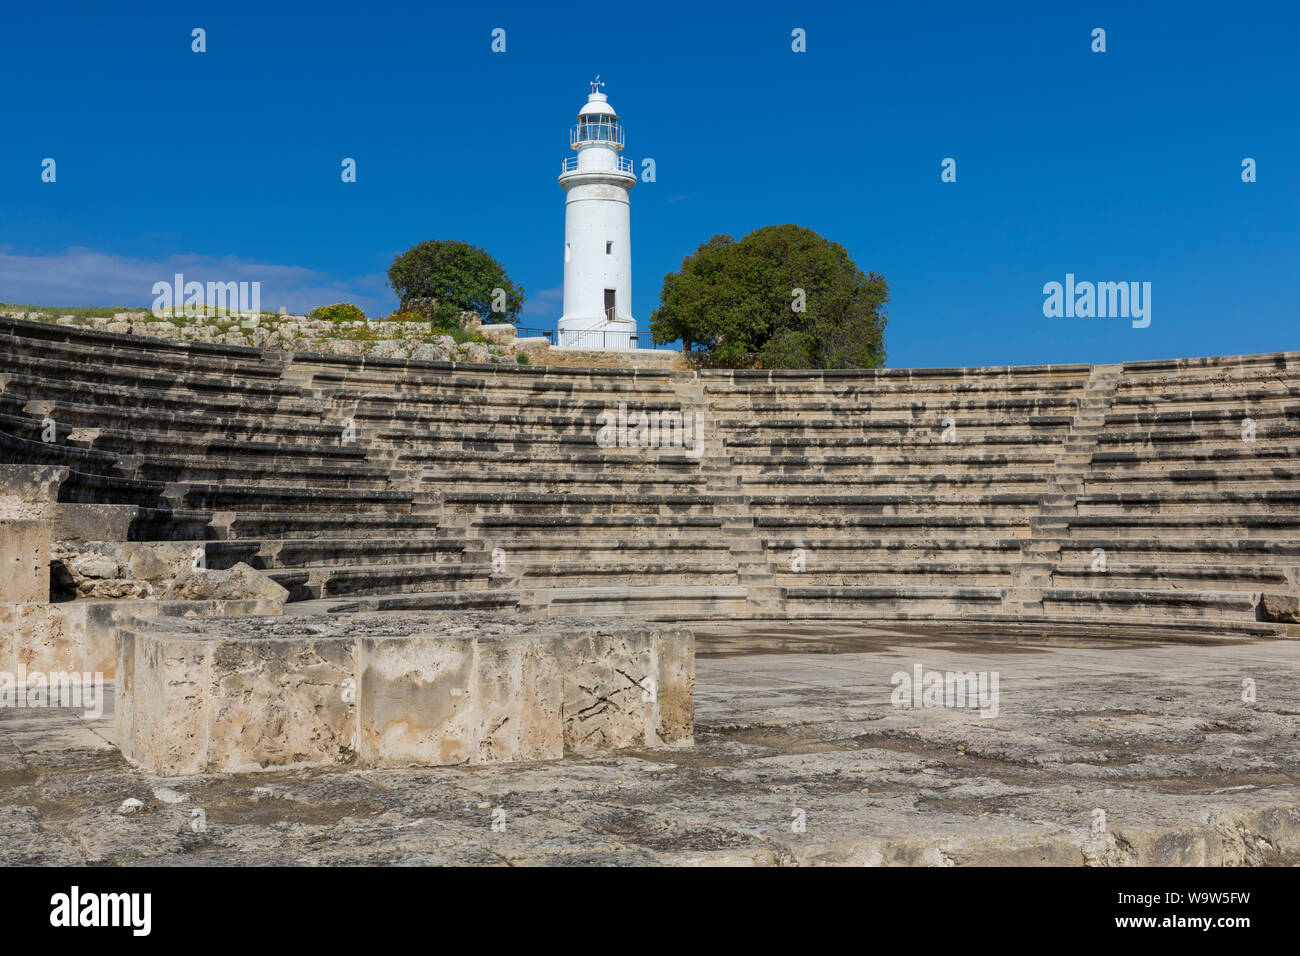 The Odeon and Lighthouse in Kato Pafos Archaeological Park, Paphos, Cyprus Stock Photo